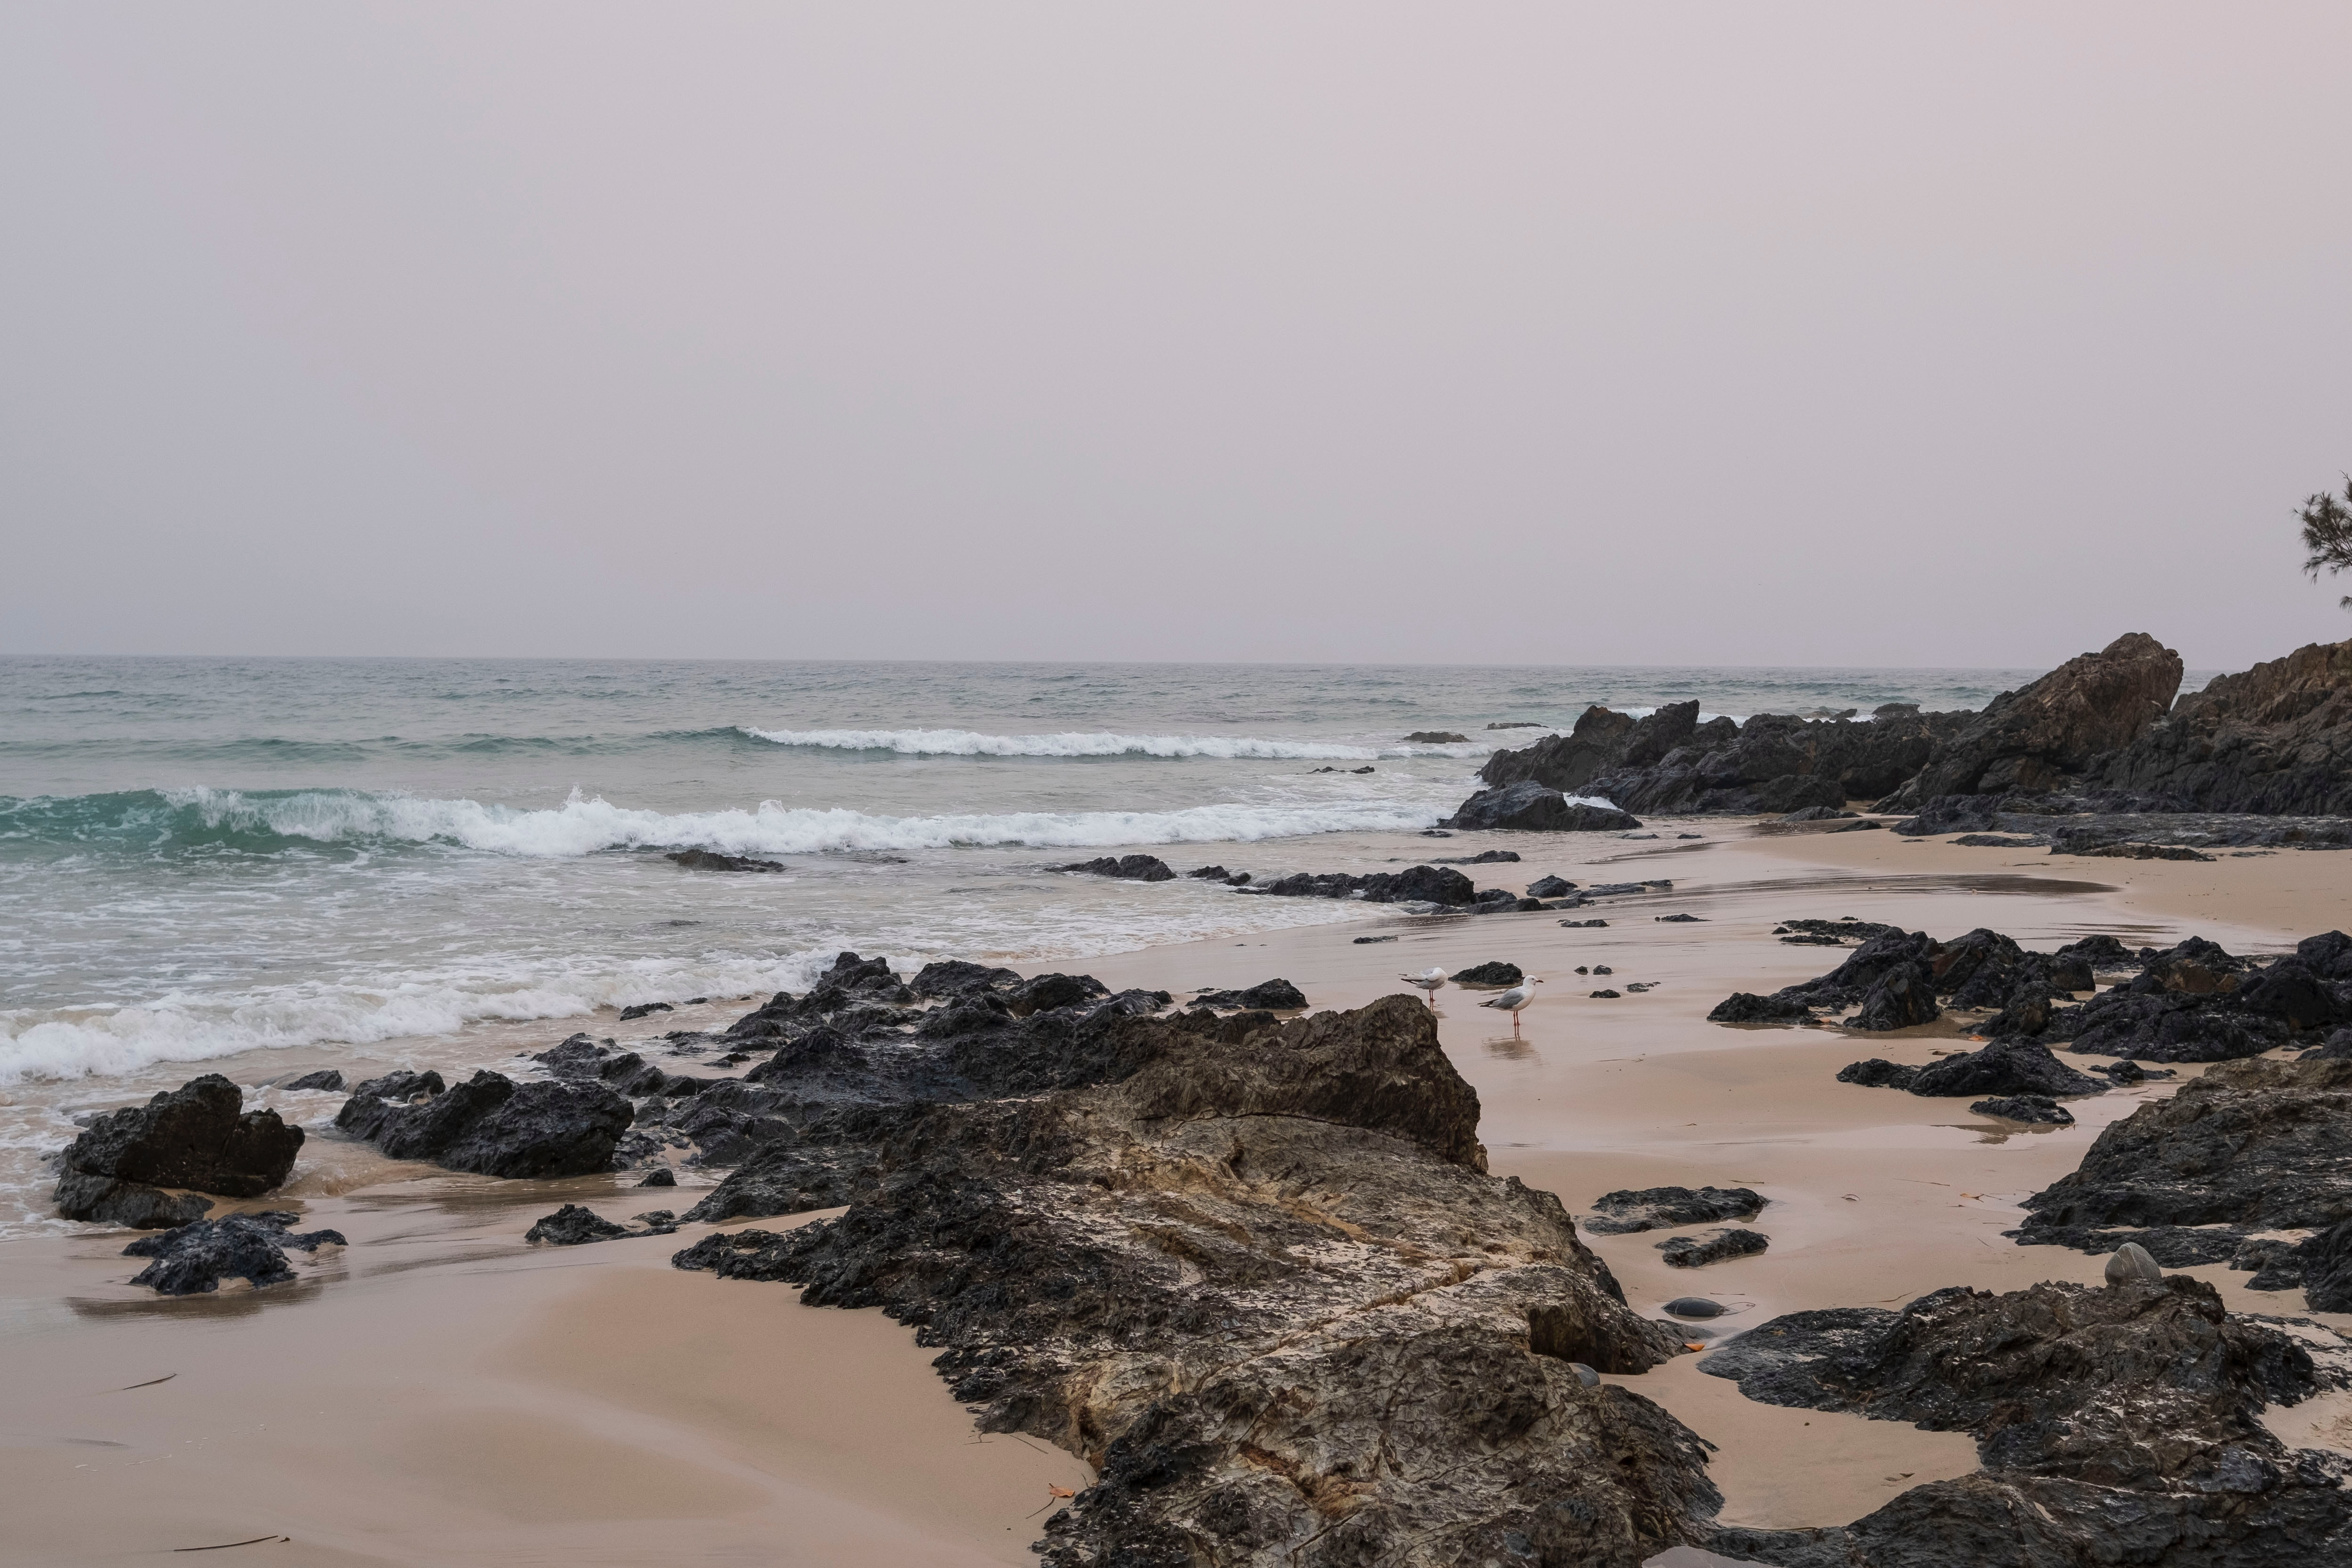 151773 download wallpaper Nature, Beach, Rocks, Waves, Birds, Seagulls screensavers and pictures for free